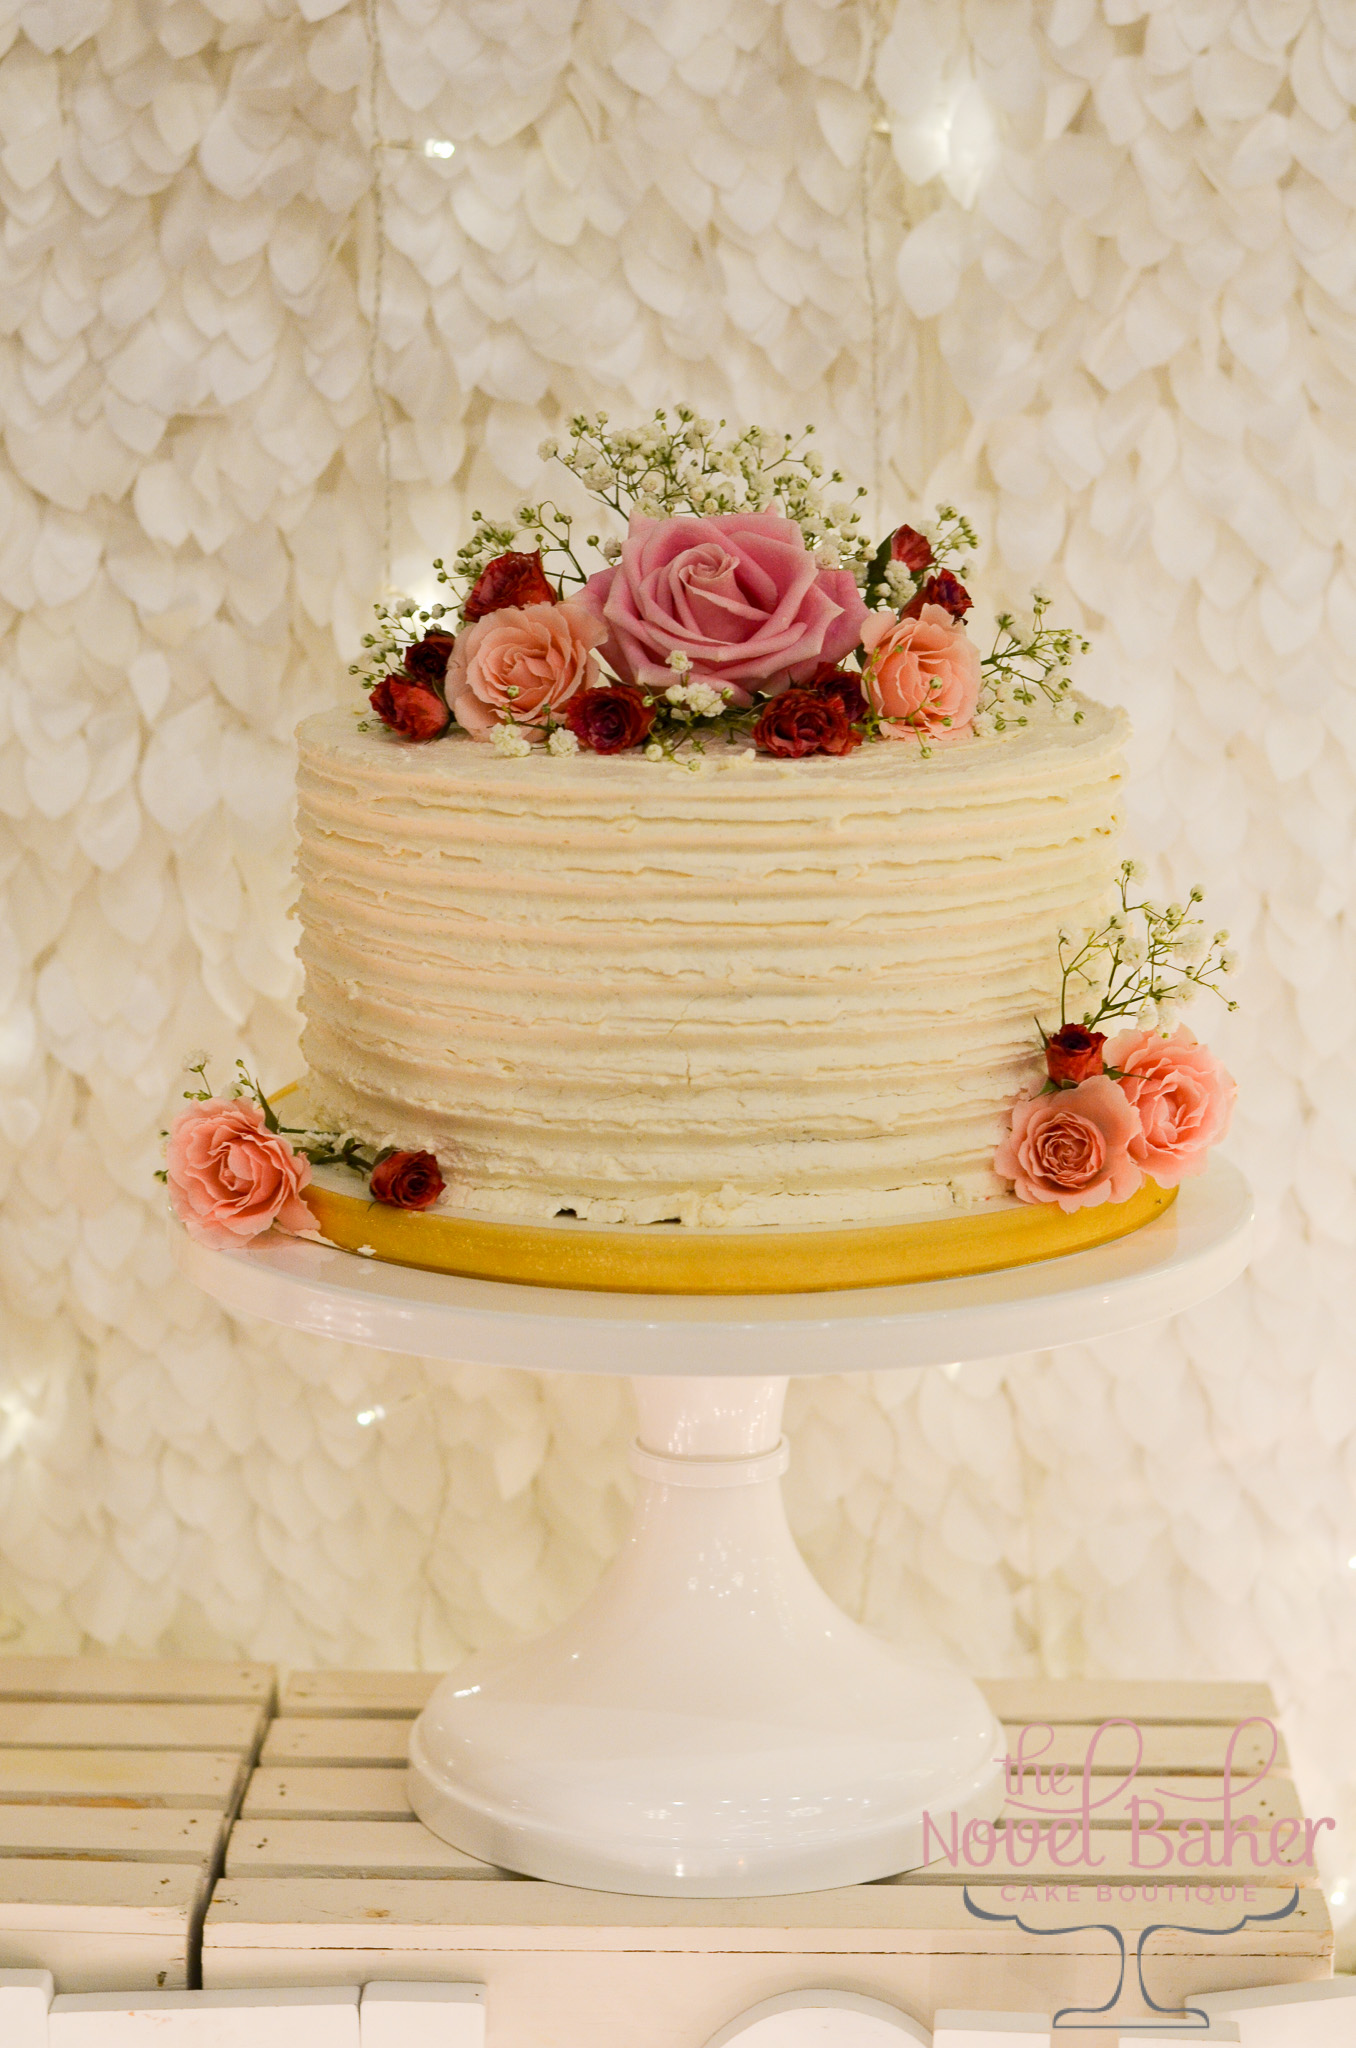 Buttercream Cake with pink sweetheart roses and baby's breath